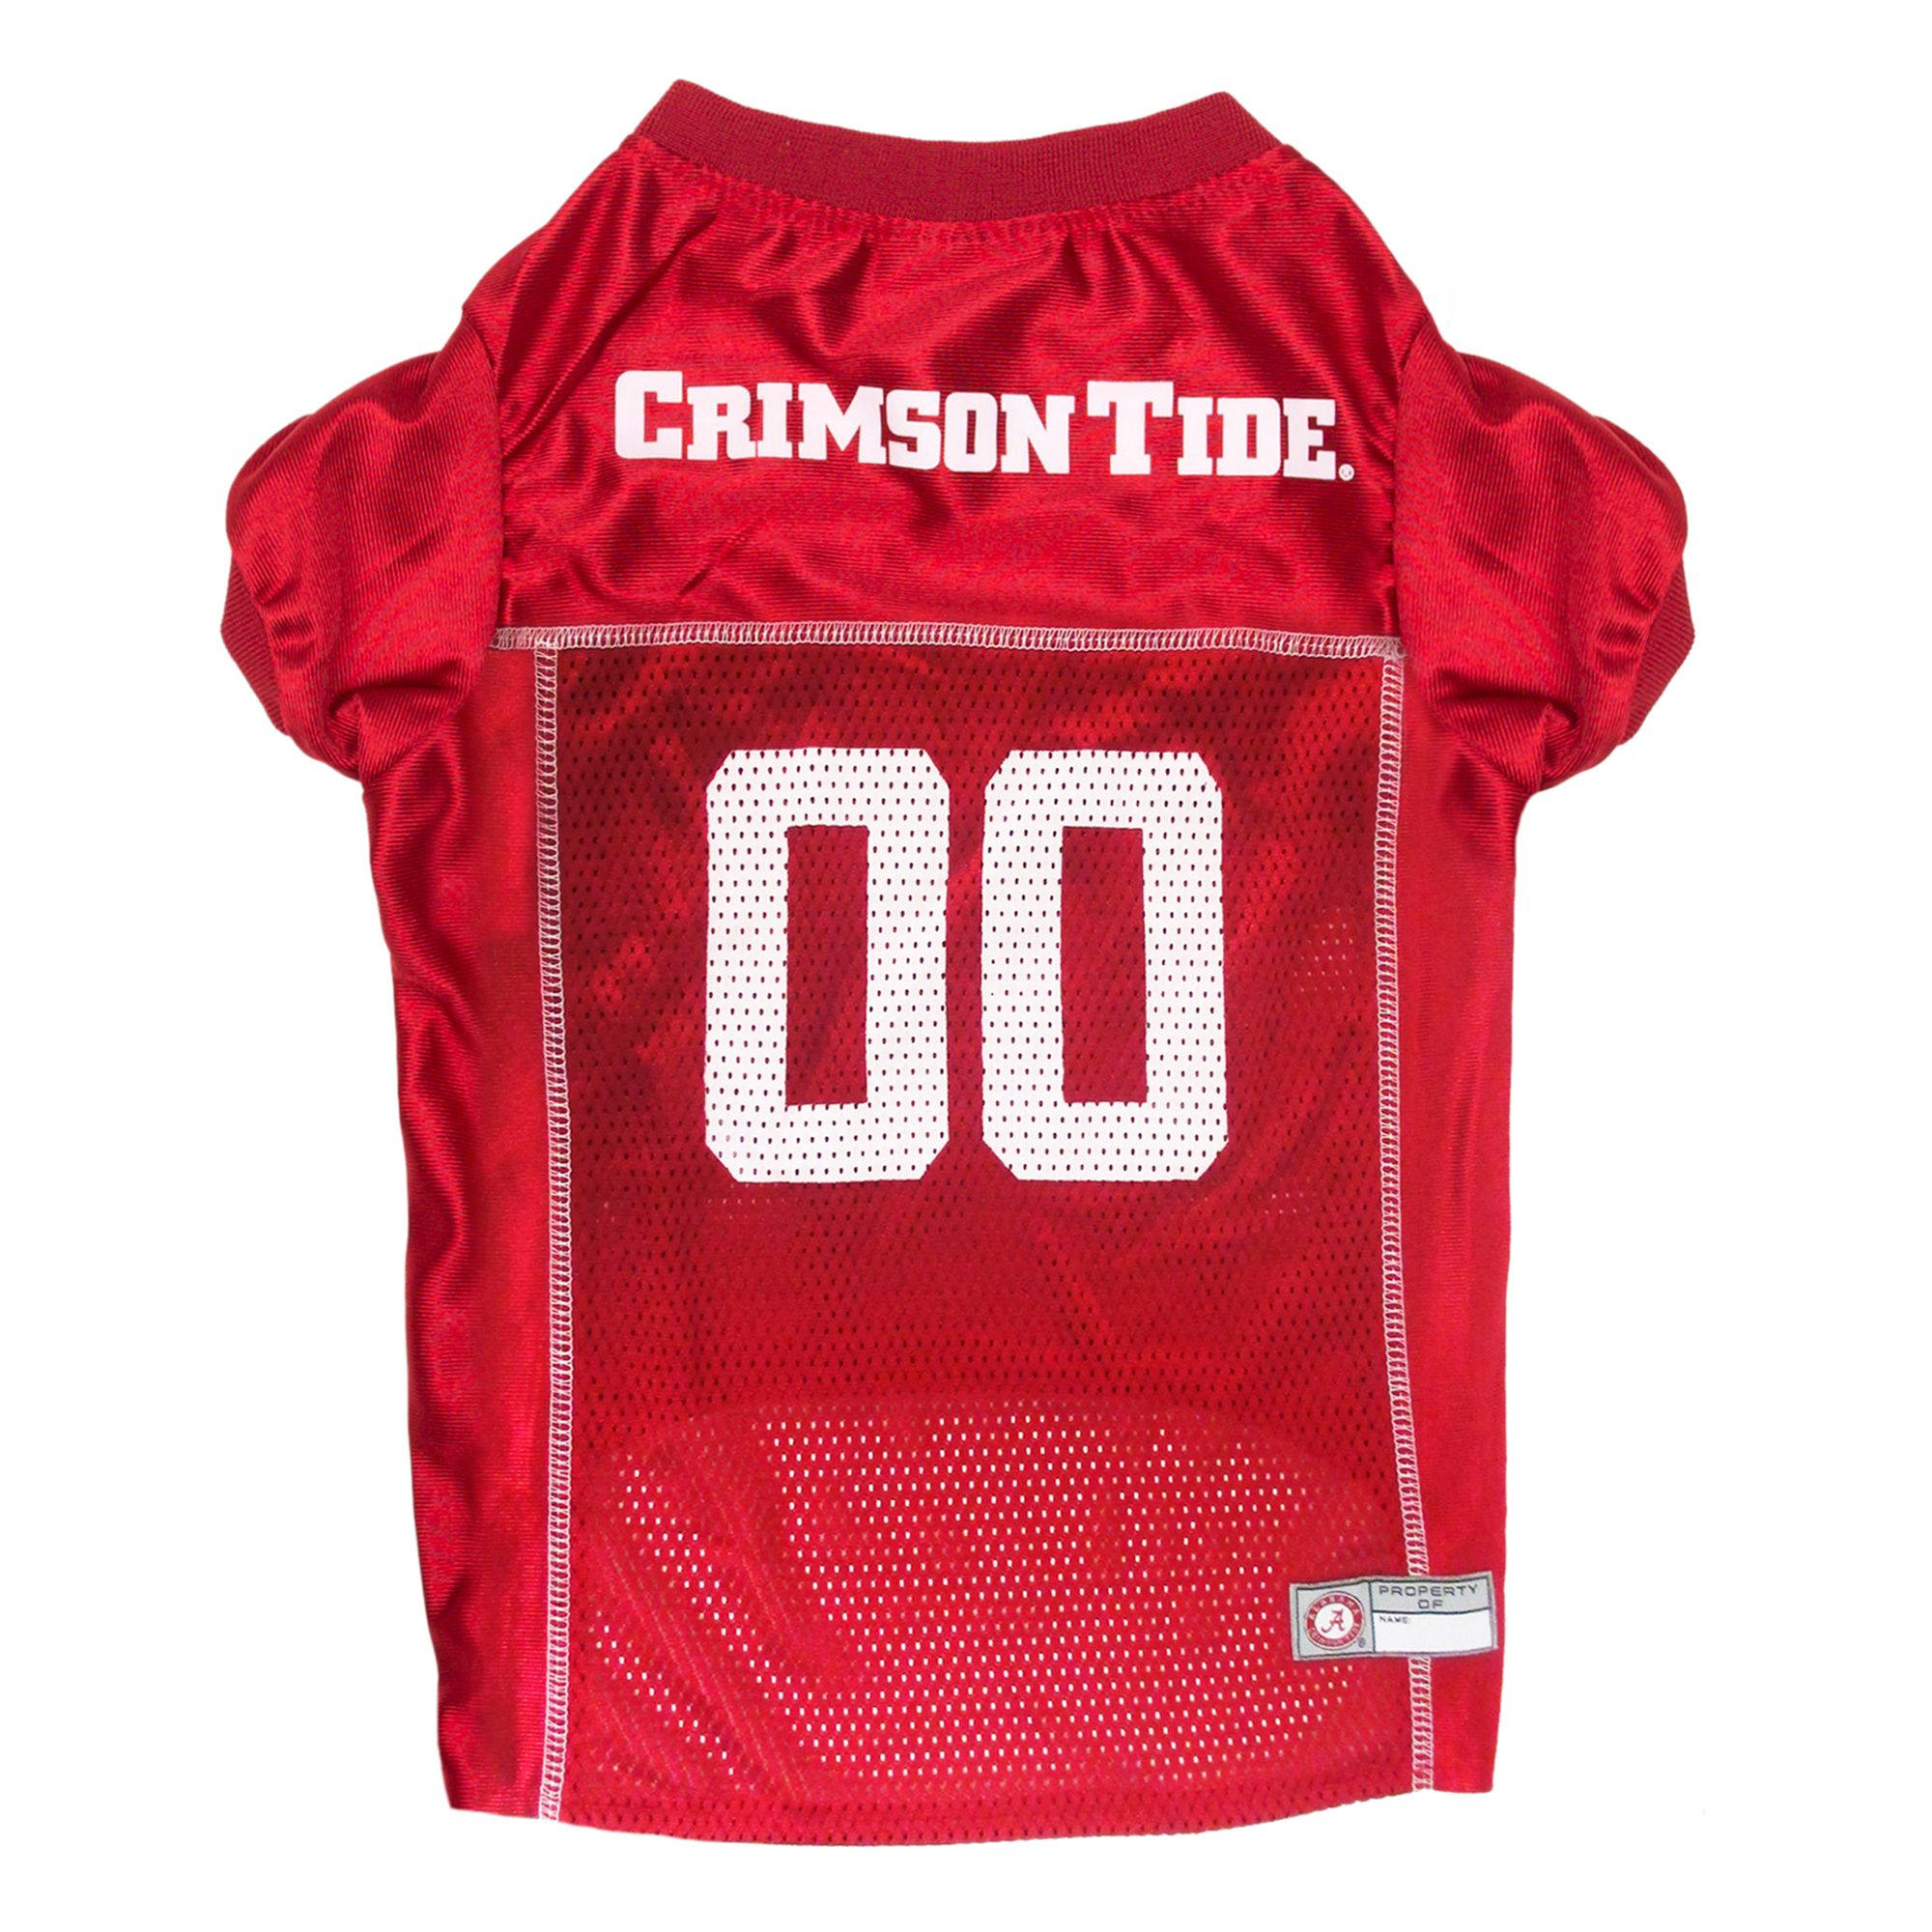 Alabama University Crimson Tide Ncaa Mesh Jersey size: Medium 5259367